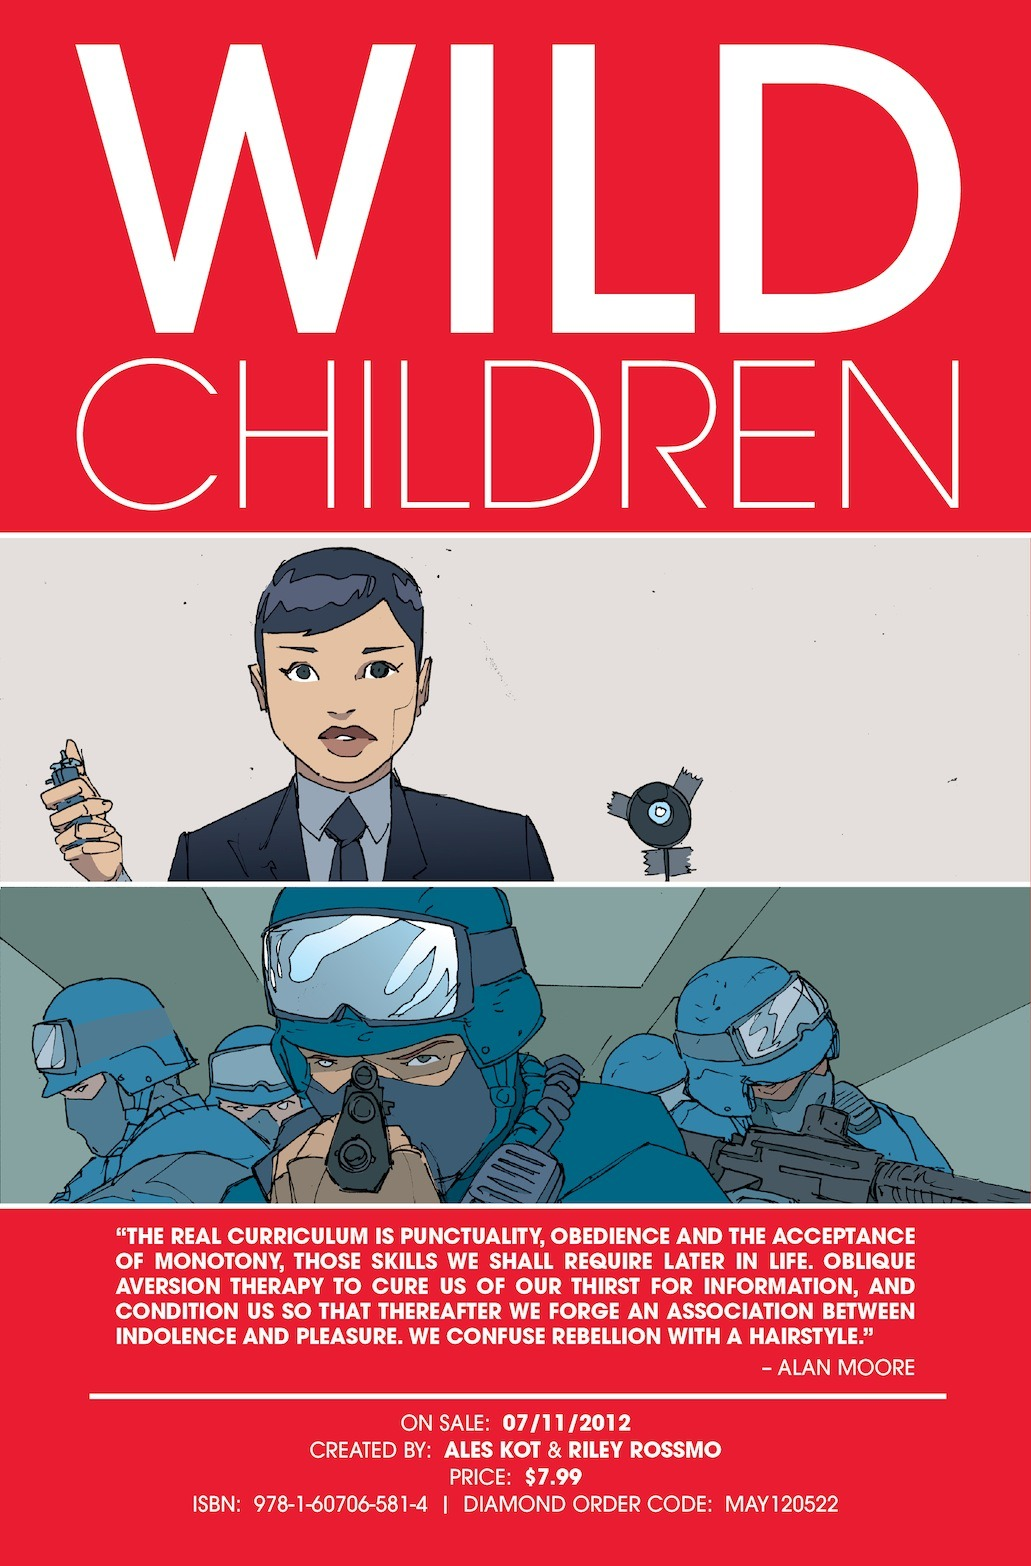 WILD CHILDREN by Ales Kot and Riley Rossmo, coming in July